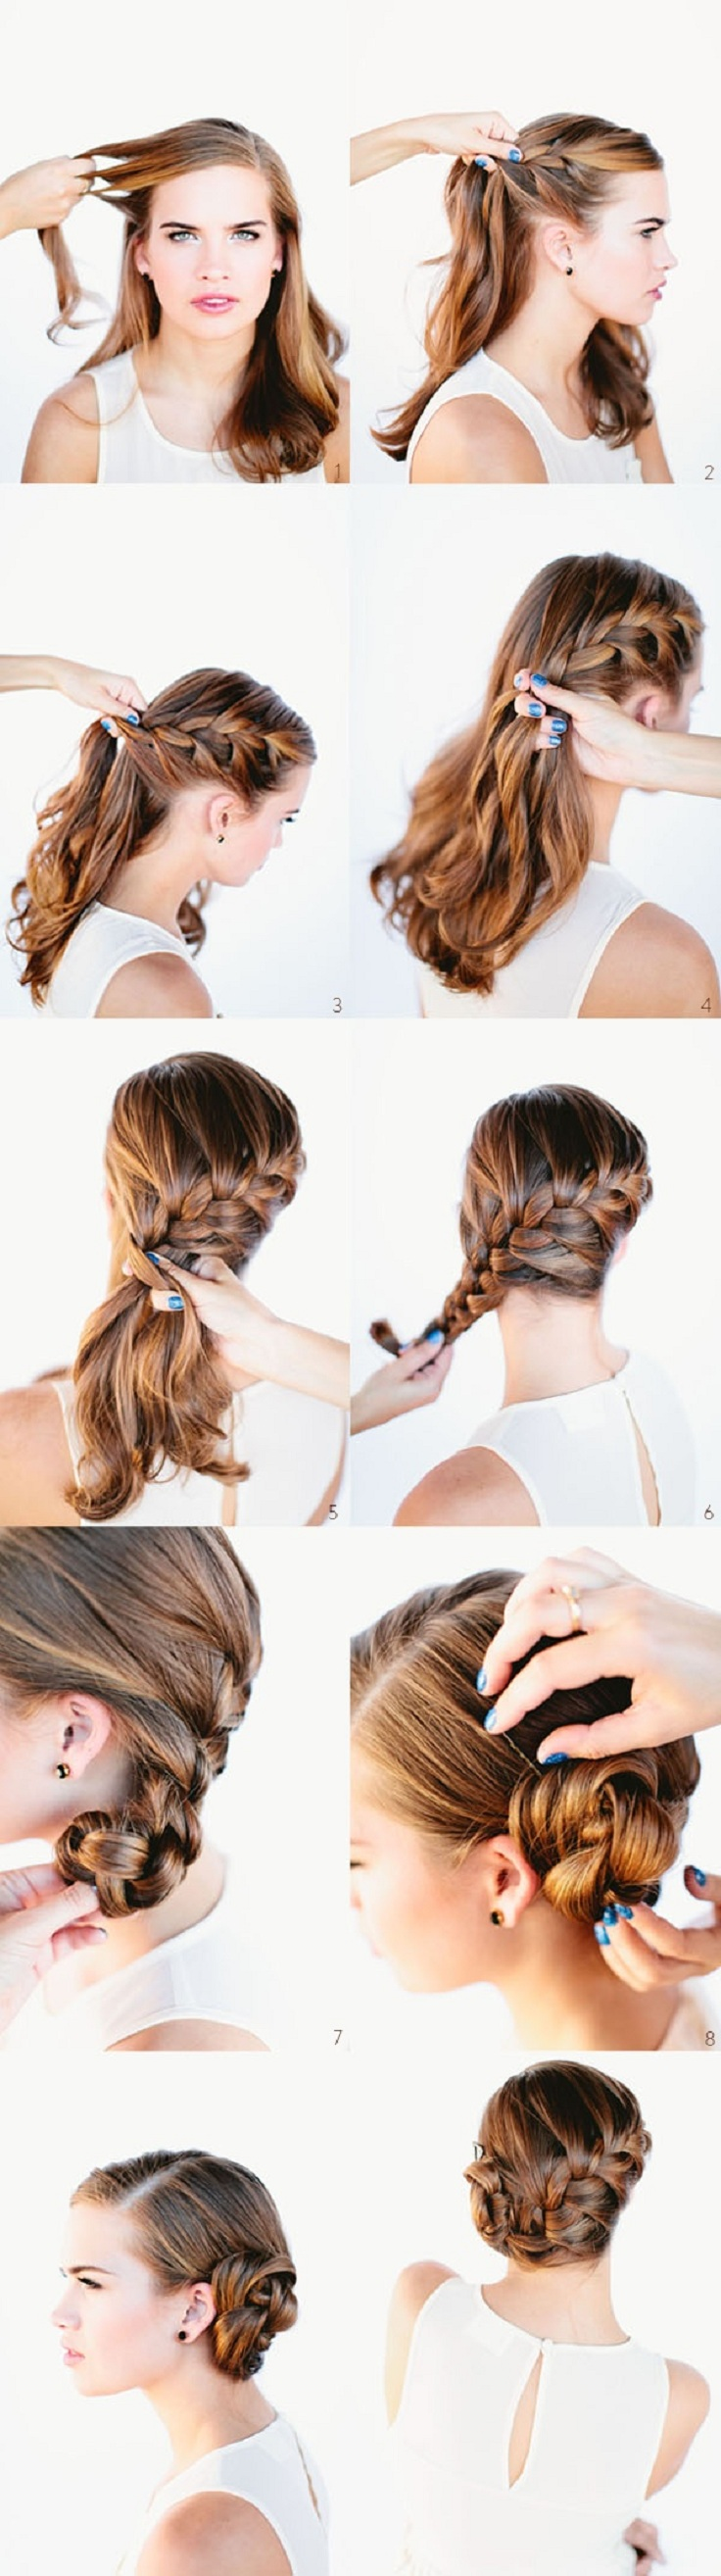 Surprising 10 Braided Hairstyle Tutorials Crafthubs Hairstyle Inspiration Daily Dogsangcom